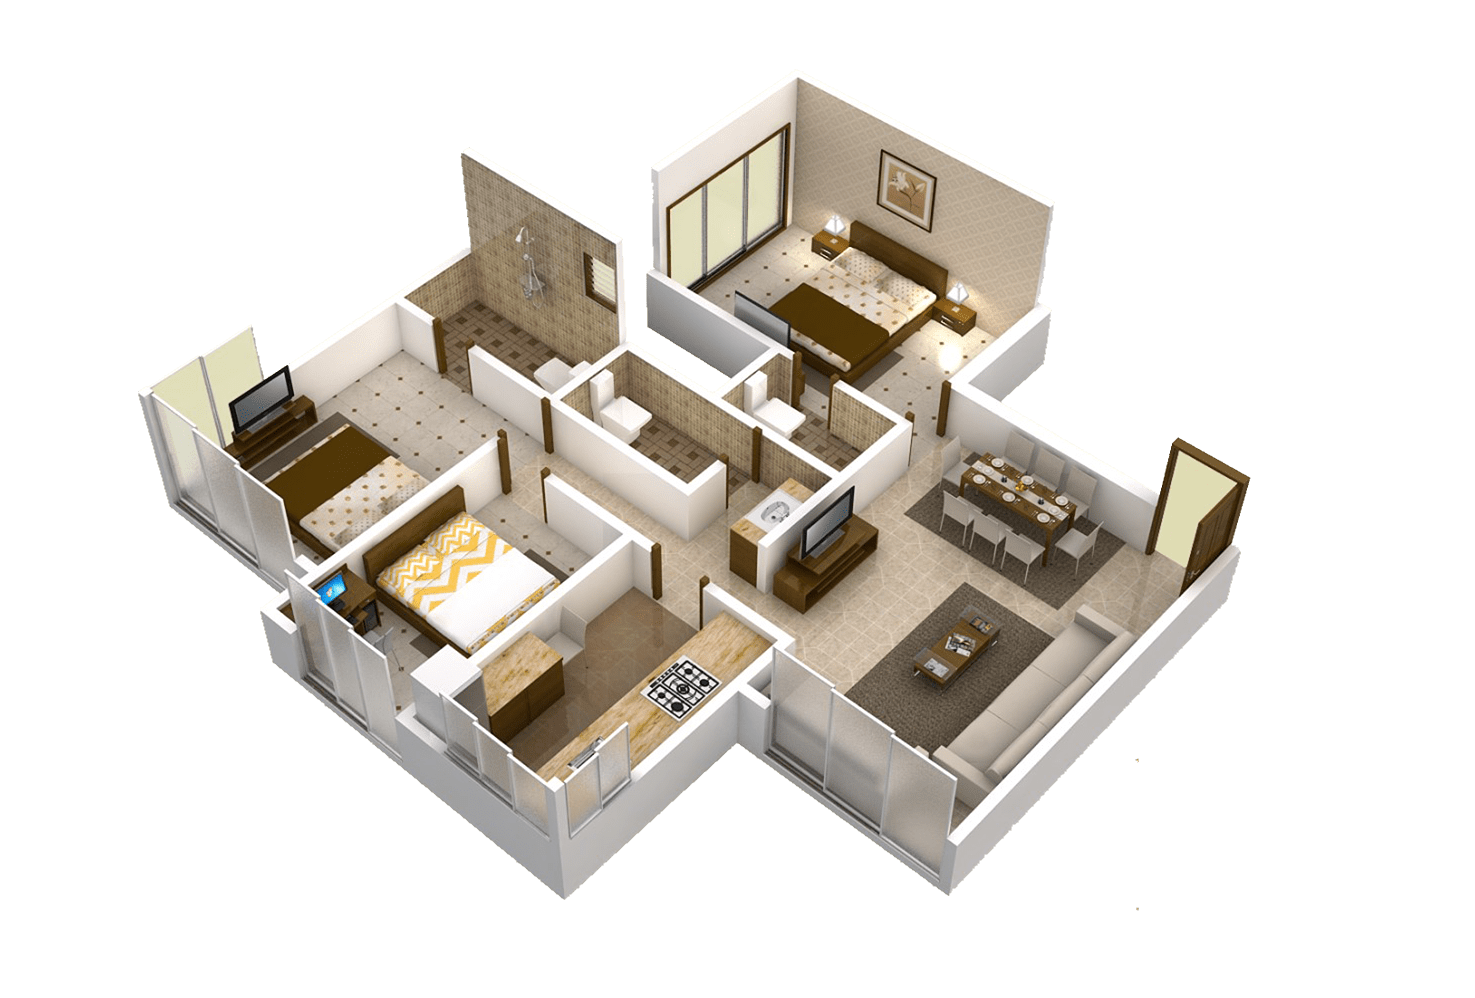 Matoshree Nisarg Floor Plans C wing 900 Sq.Ft. – Mulund Flats for Sale